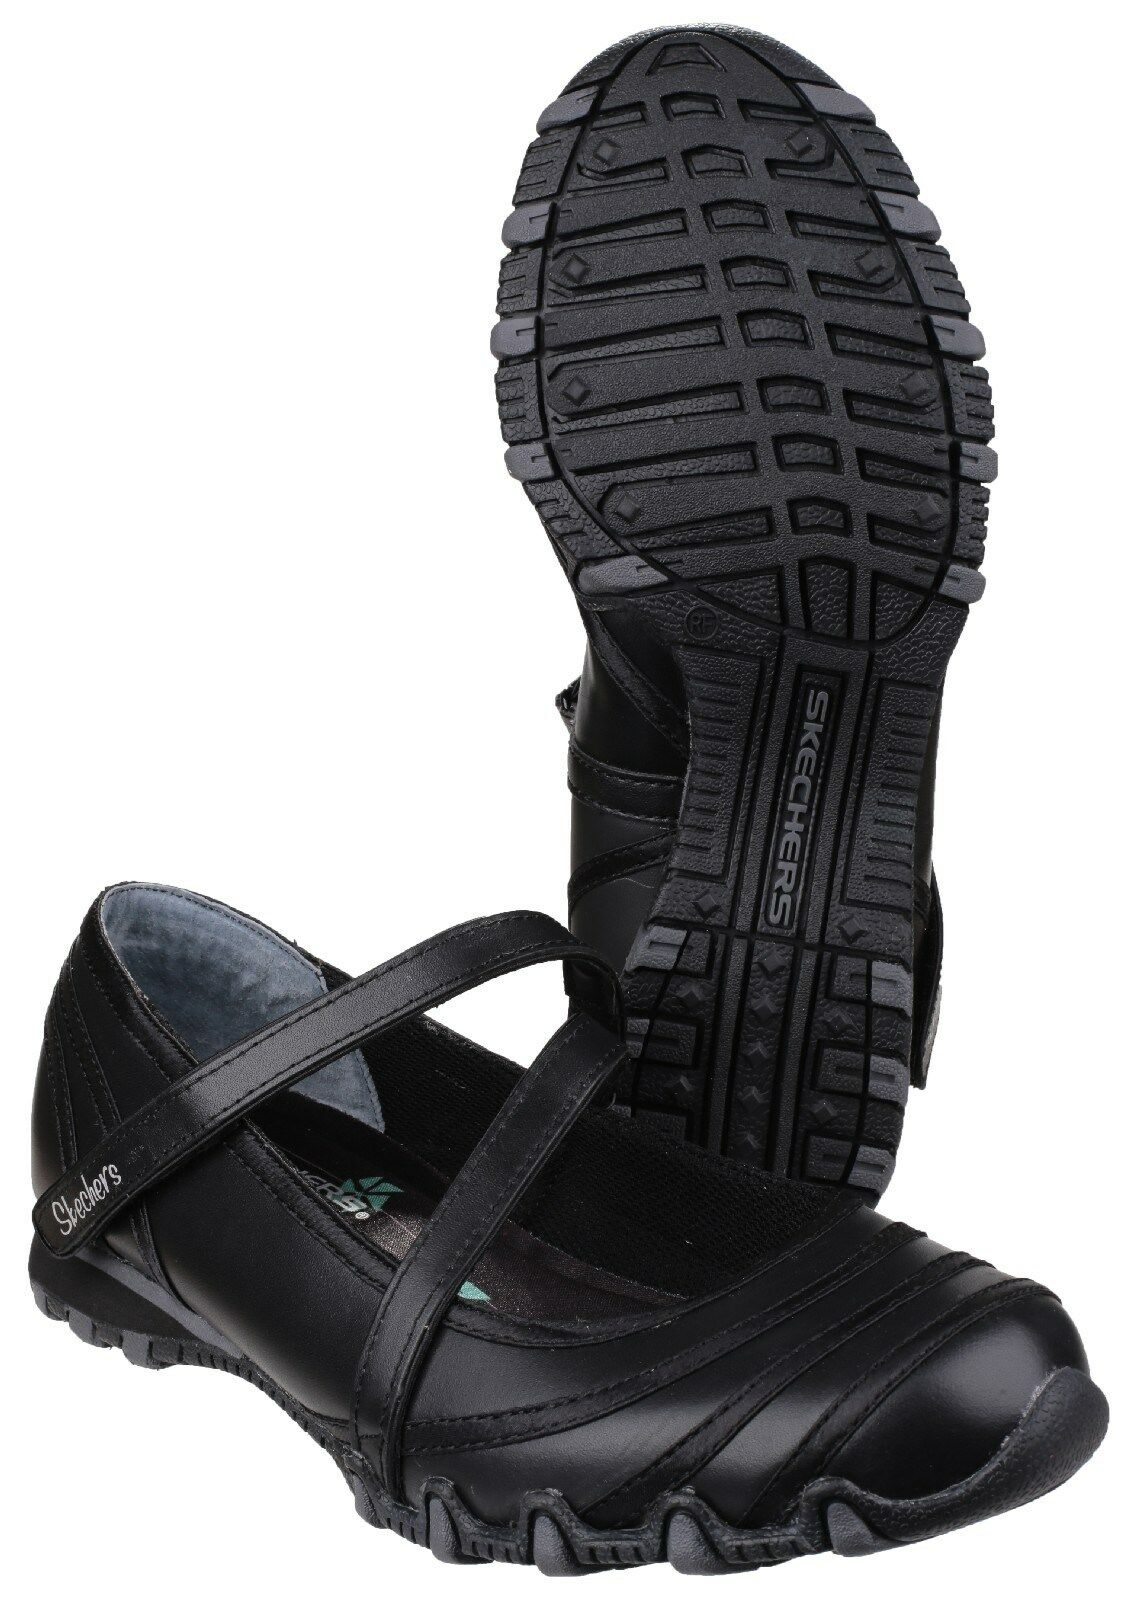 Skechers Bikers SATIN SHINE Mary Jane BALLERINA LINEA DONNA SCARPE NERO POMPE UK3-8